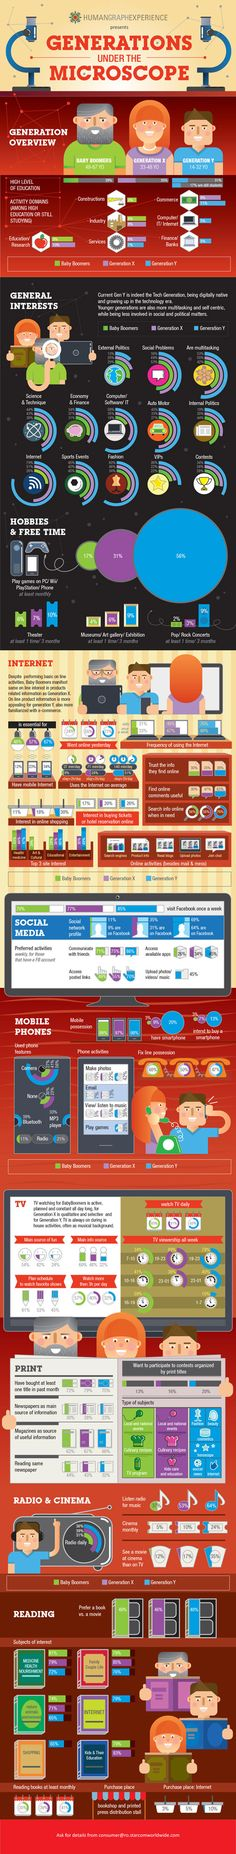 Generations under the Microscope - Media Consumption, Online Shopping etc. #infographic